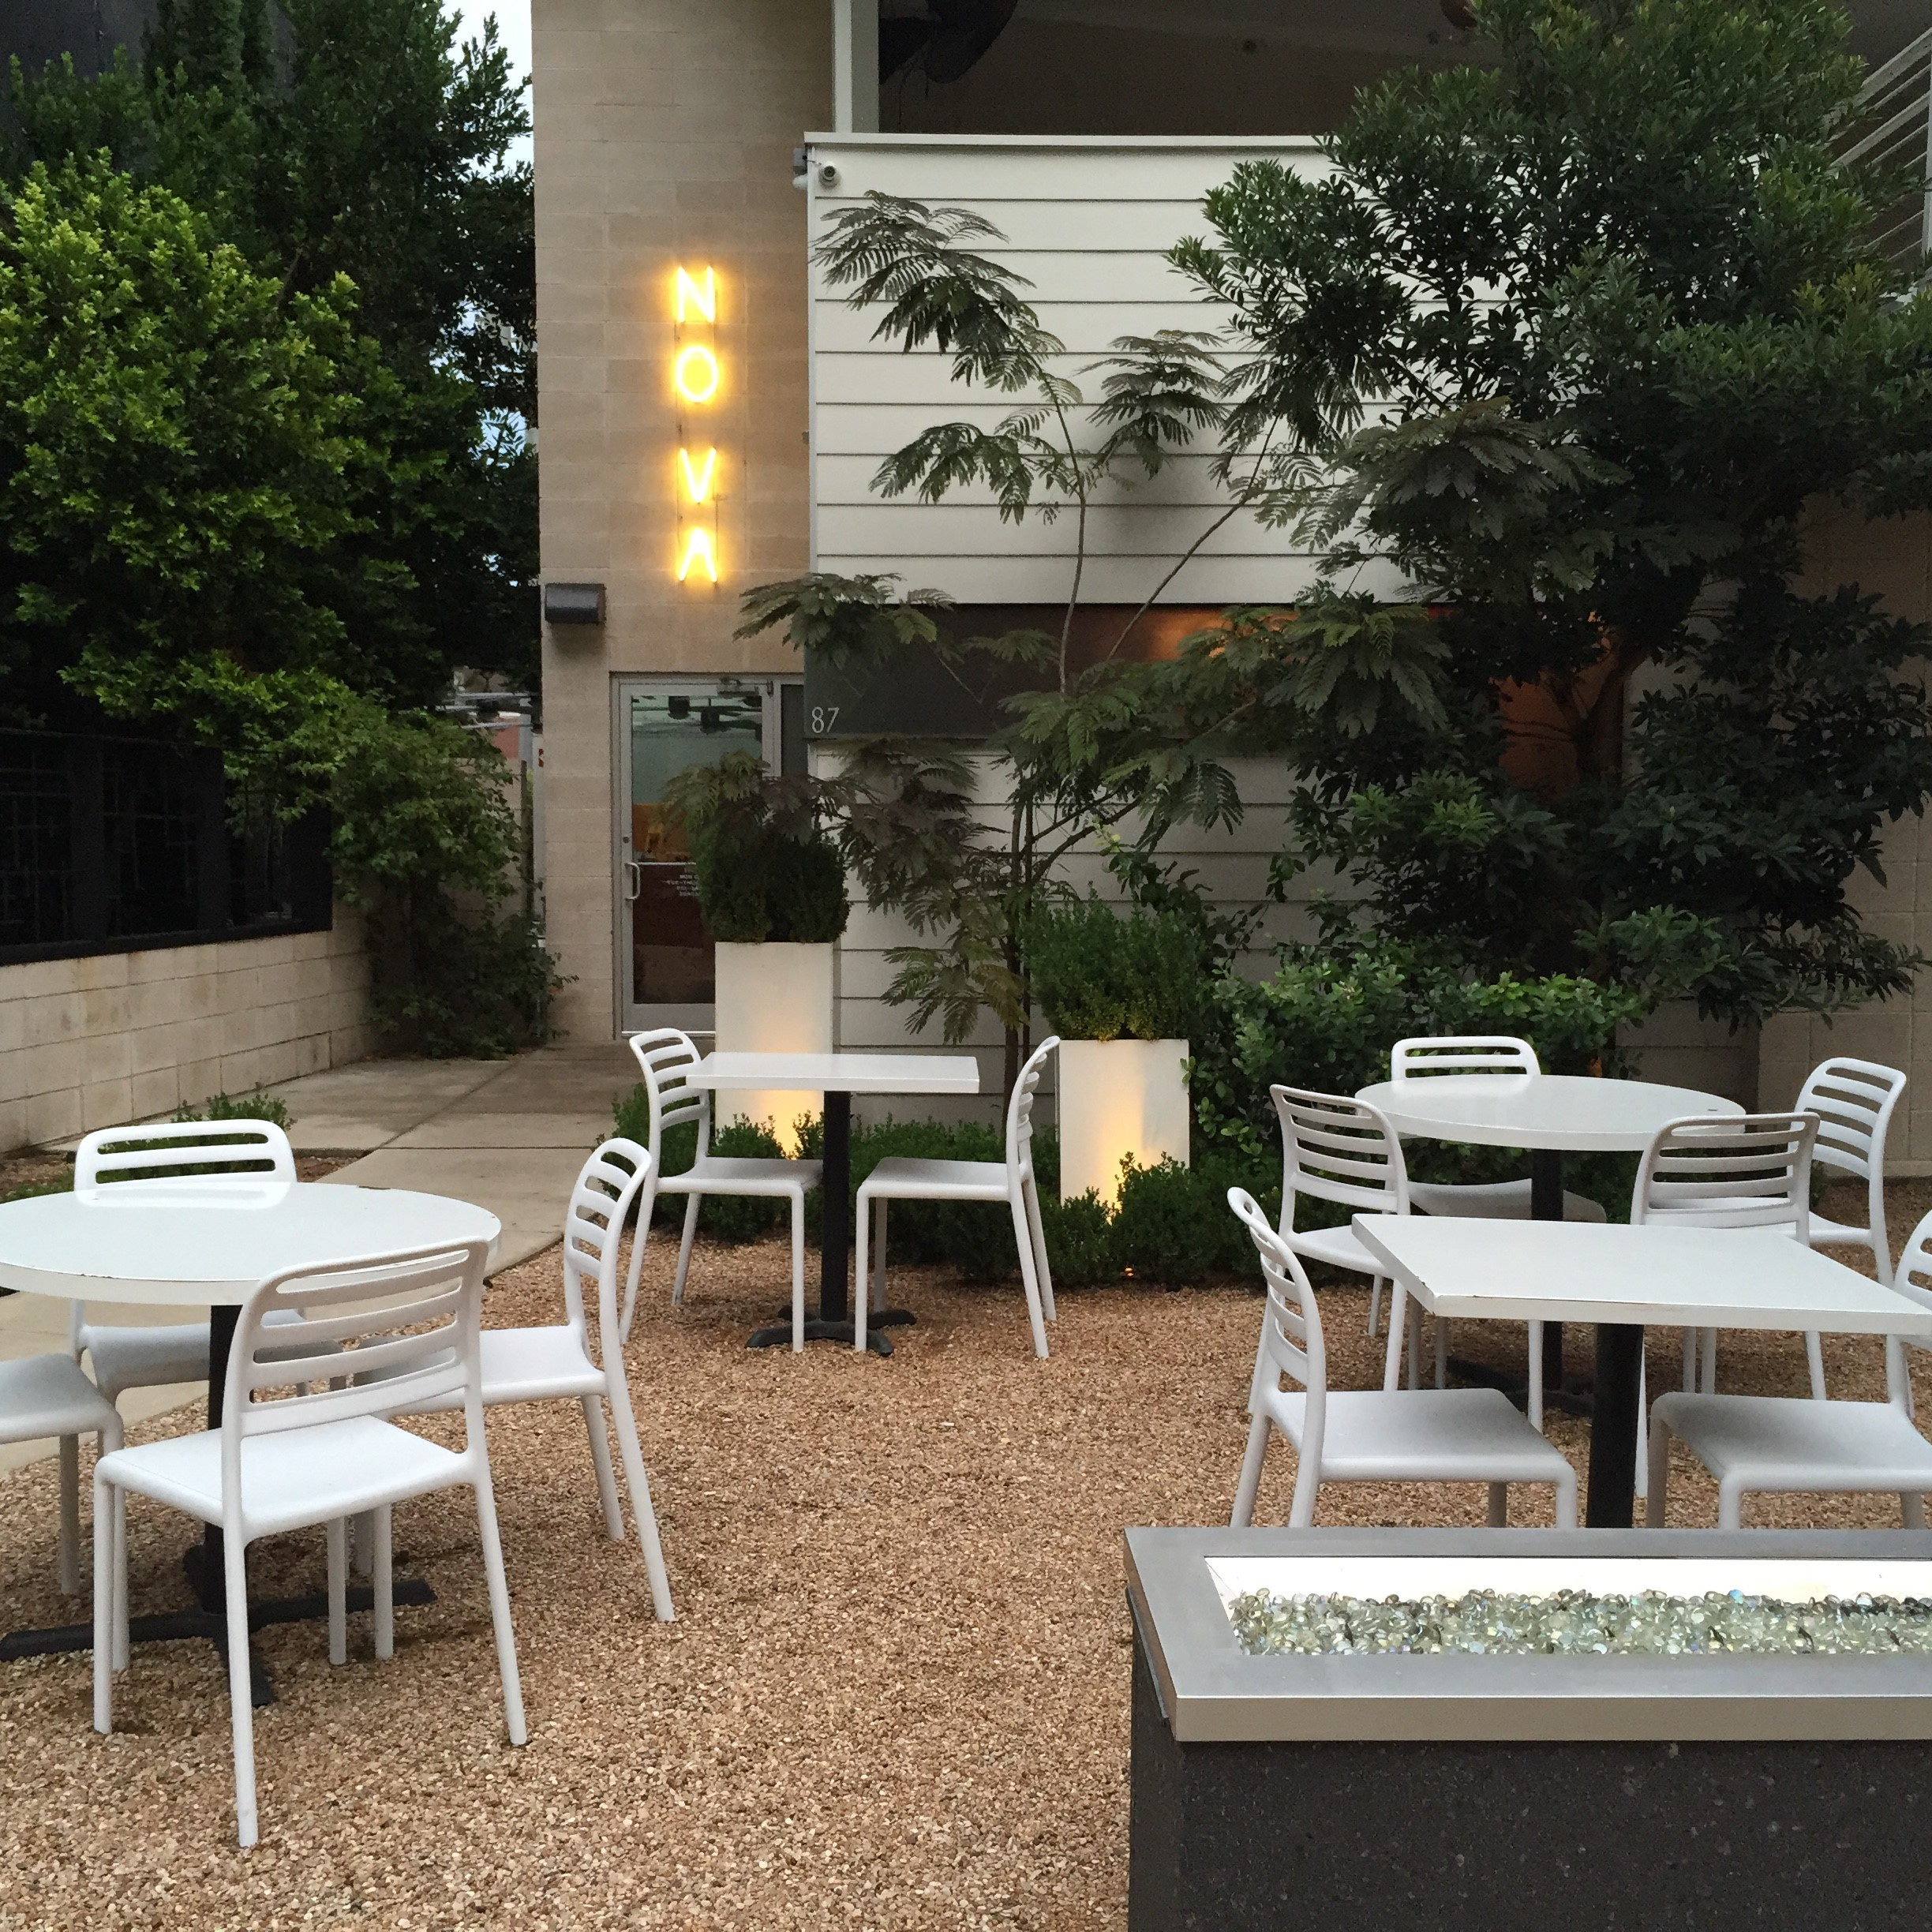 Updates resin chairs at atx restaurant for Hotel design blog